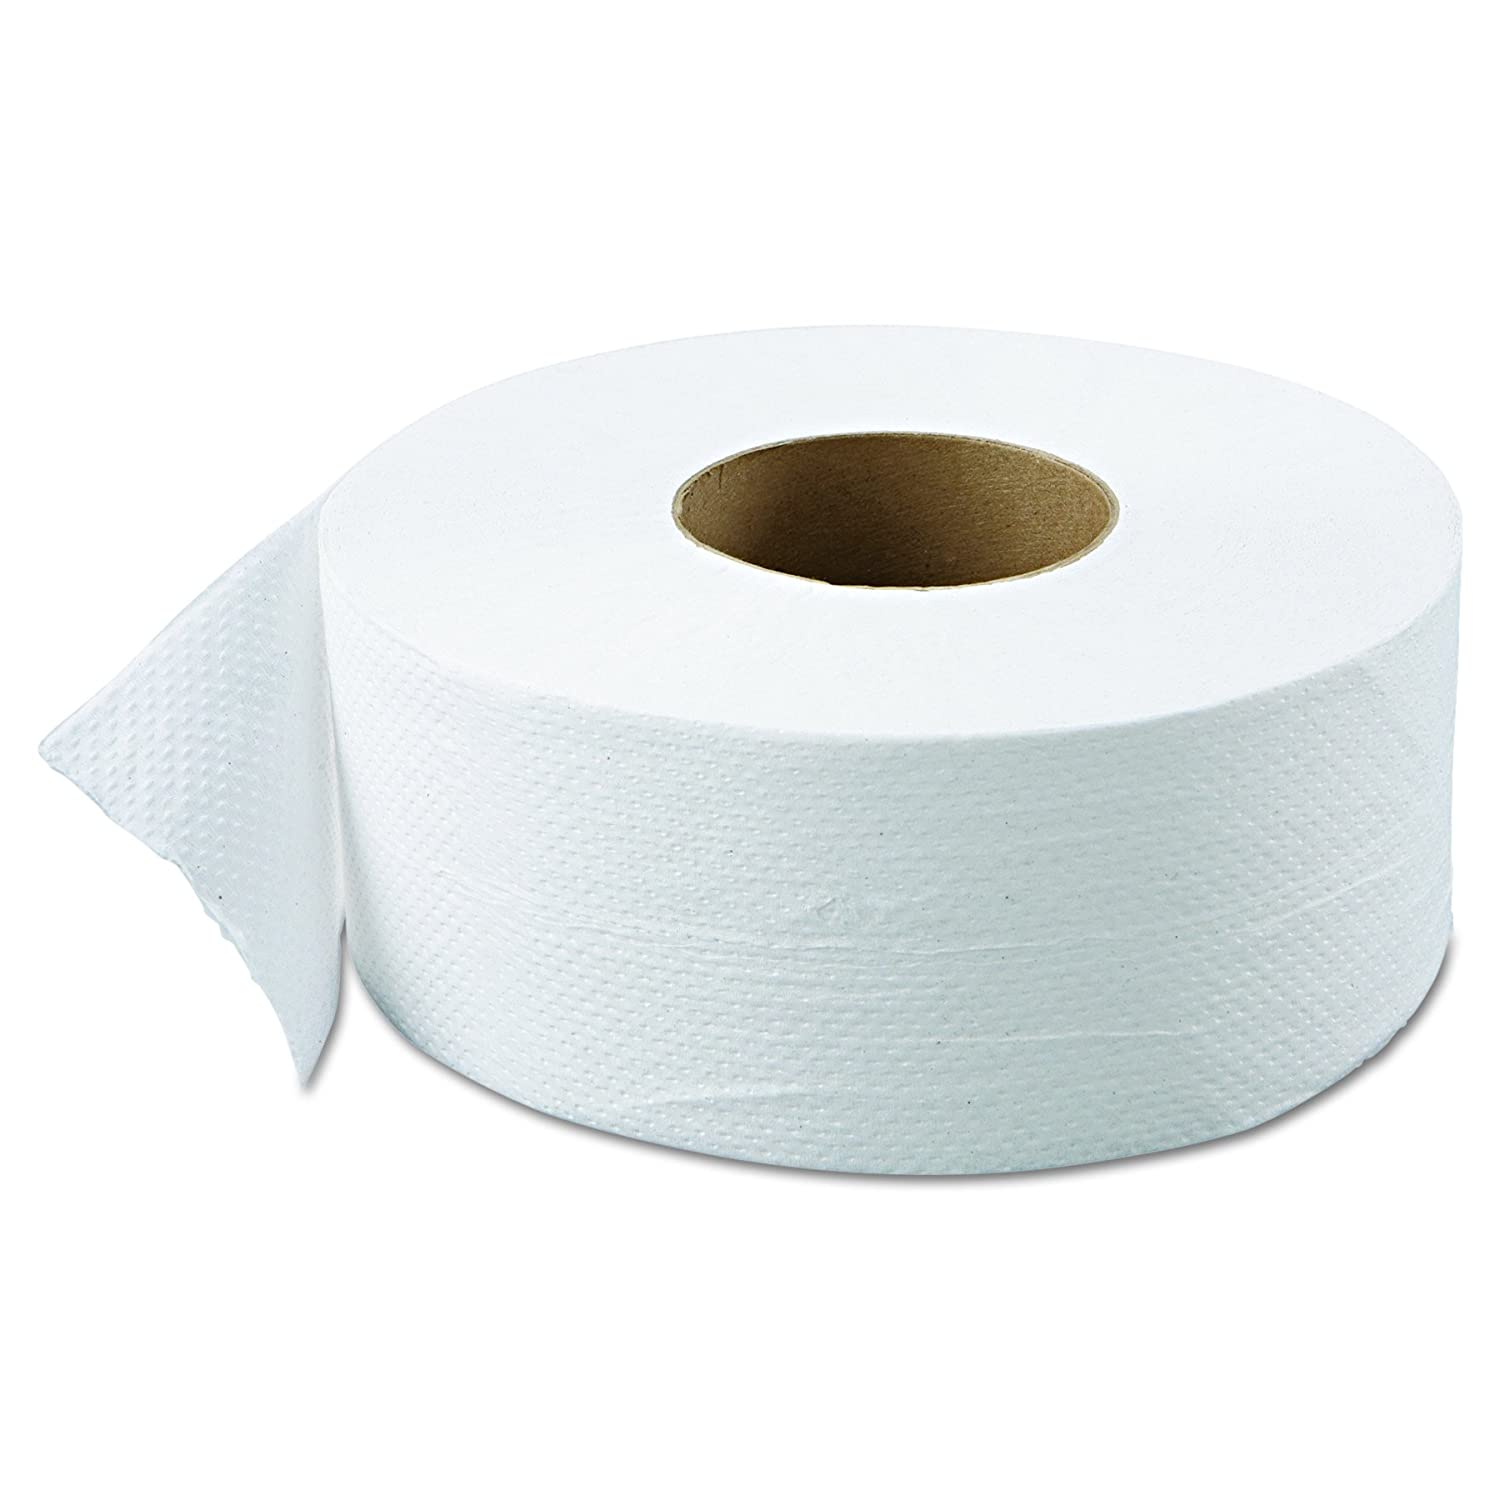 Green Heritage 800 9' Diameter x 3.42' Width, 2-Ply Jumbo Roll Bathroom Tissue (Case of 12) Atlas Paper Mills APM800GREEN